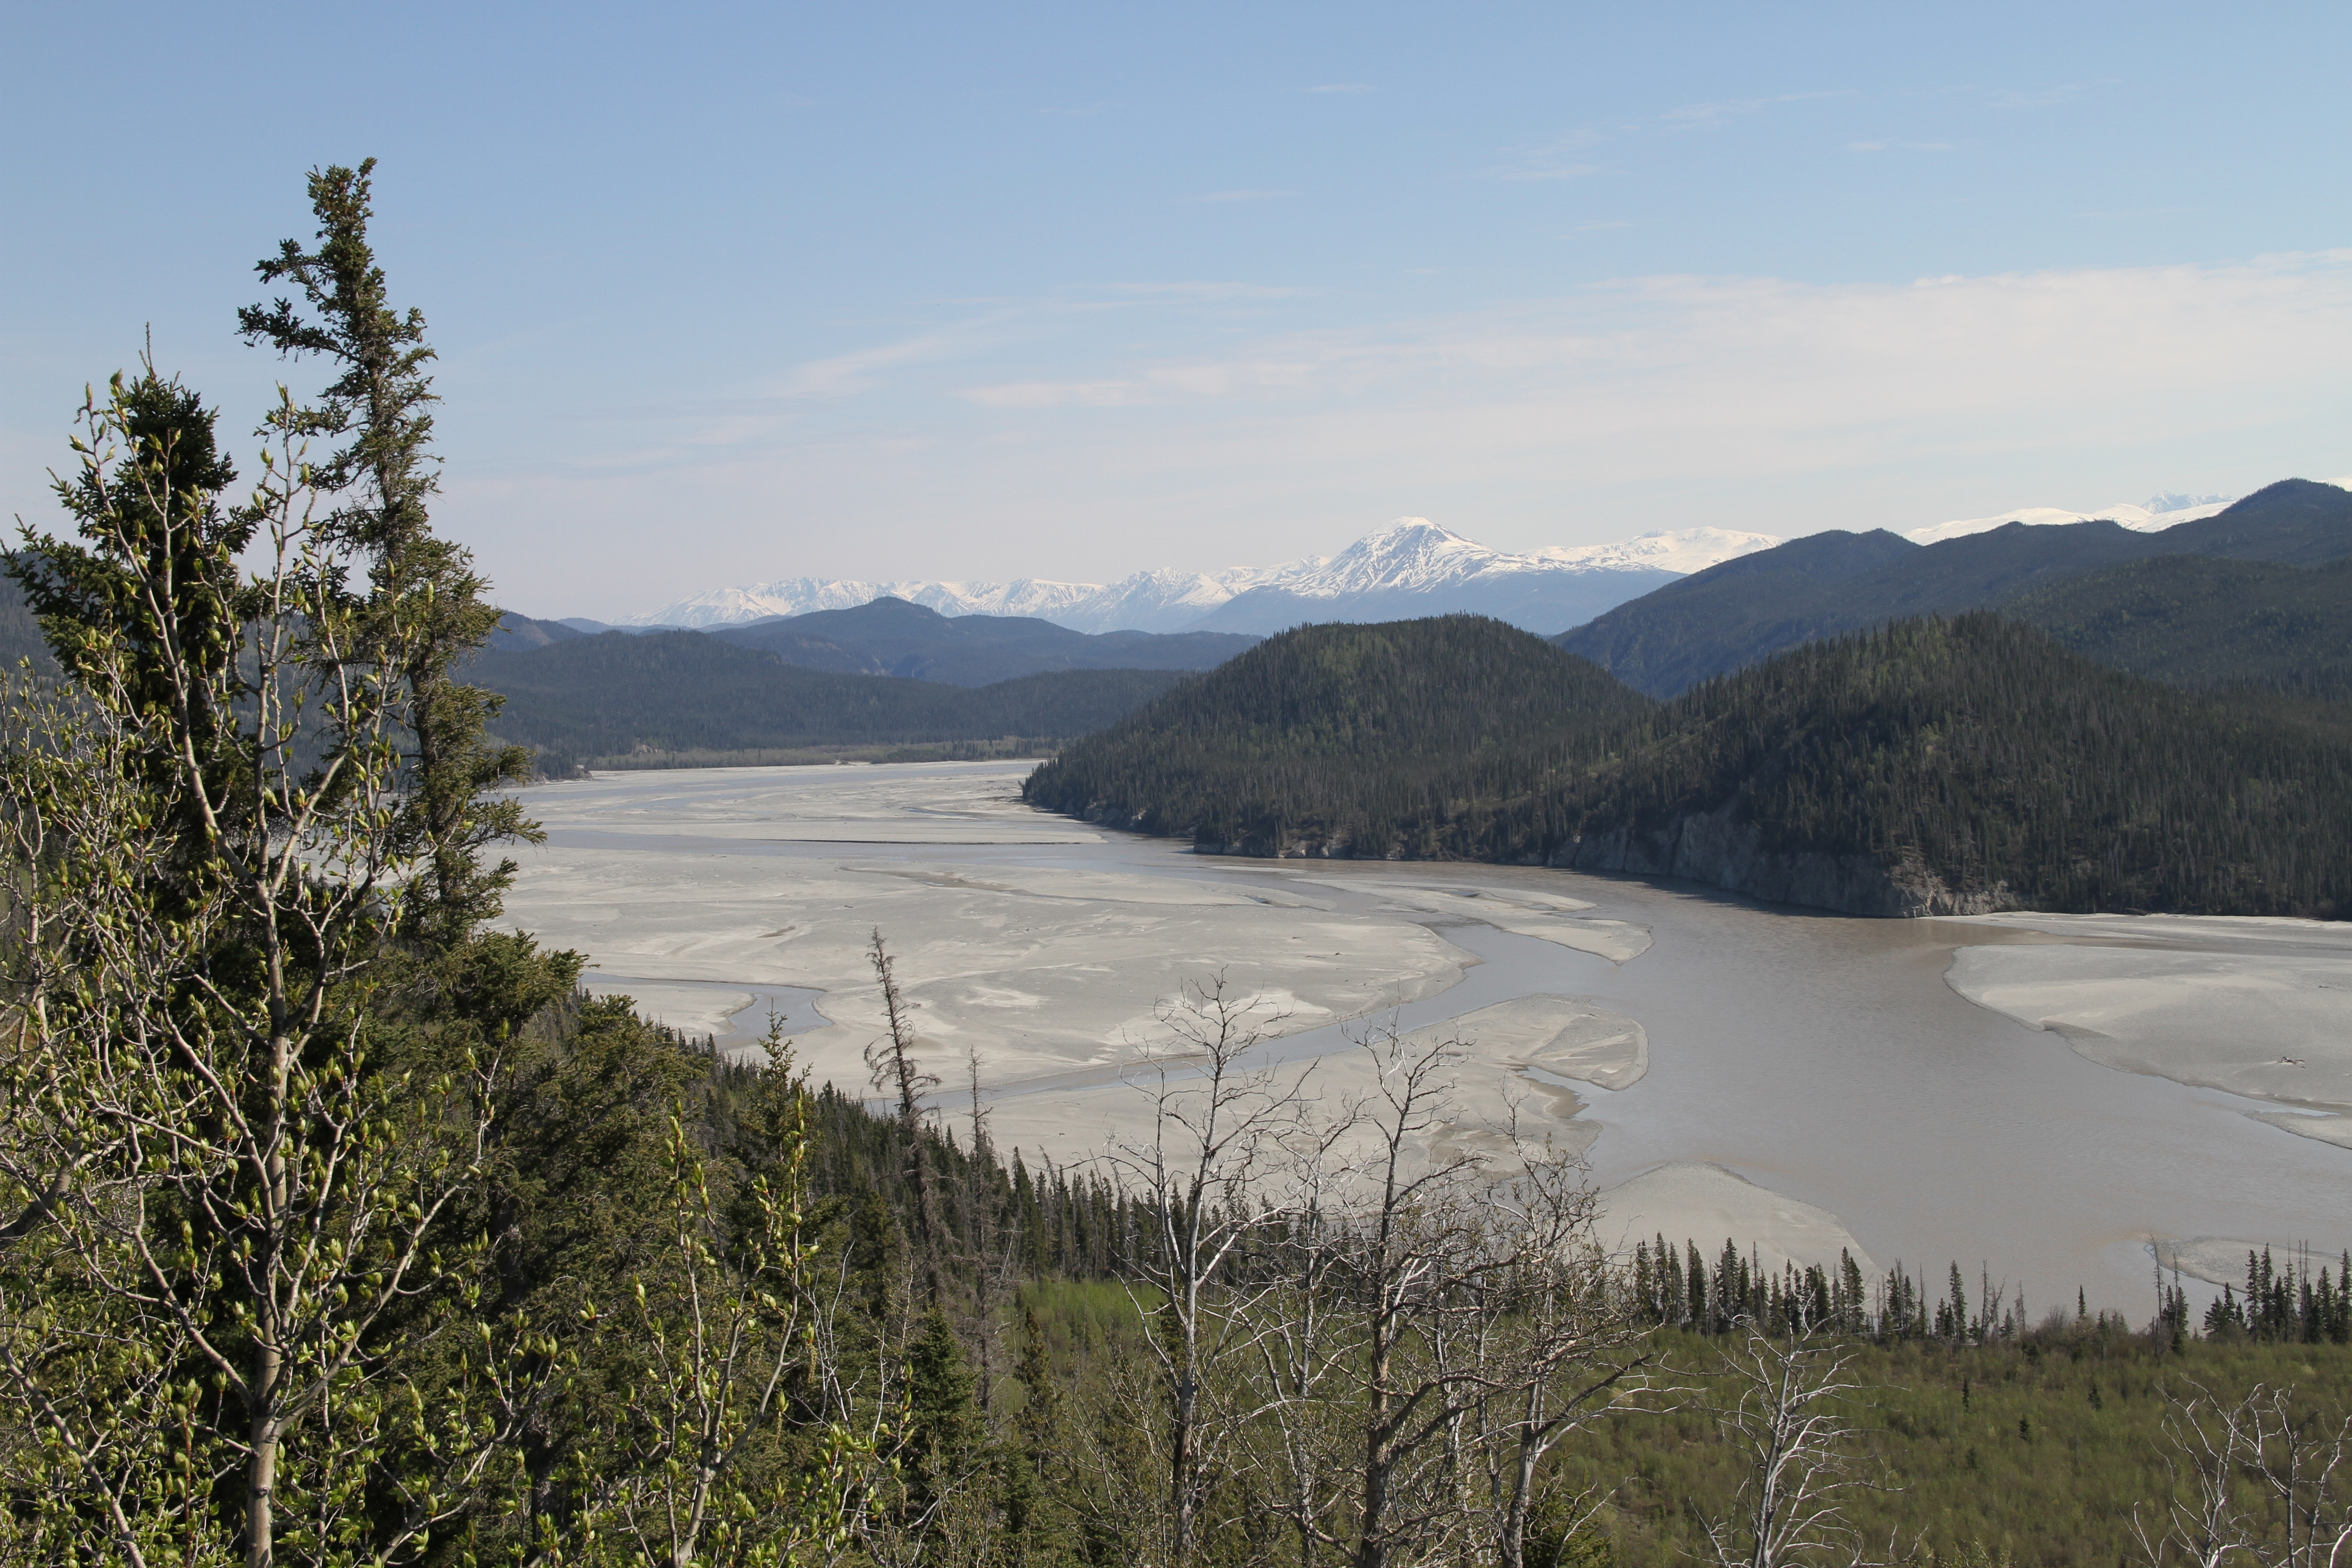 chitina dating Book your tickets online for the top things to do in fairbanks, alaska on tripadvisor: see 17,604 traveler reviews and photos of fairbanks tourist attractions find what to do today, this weekend, or in june.